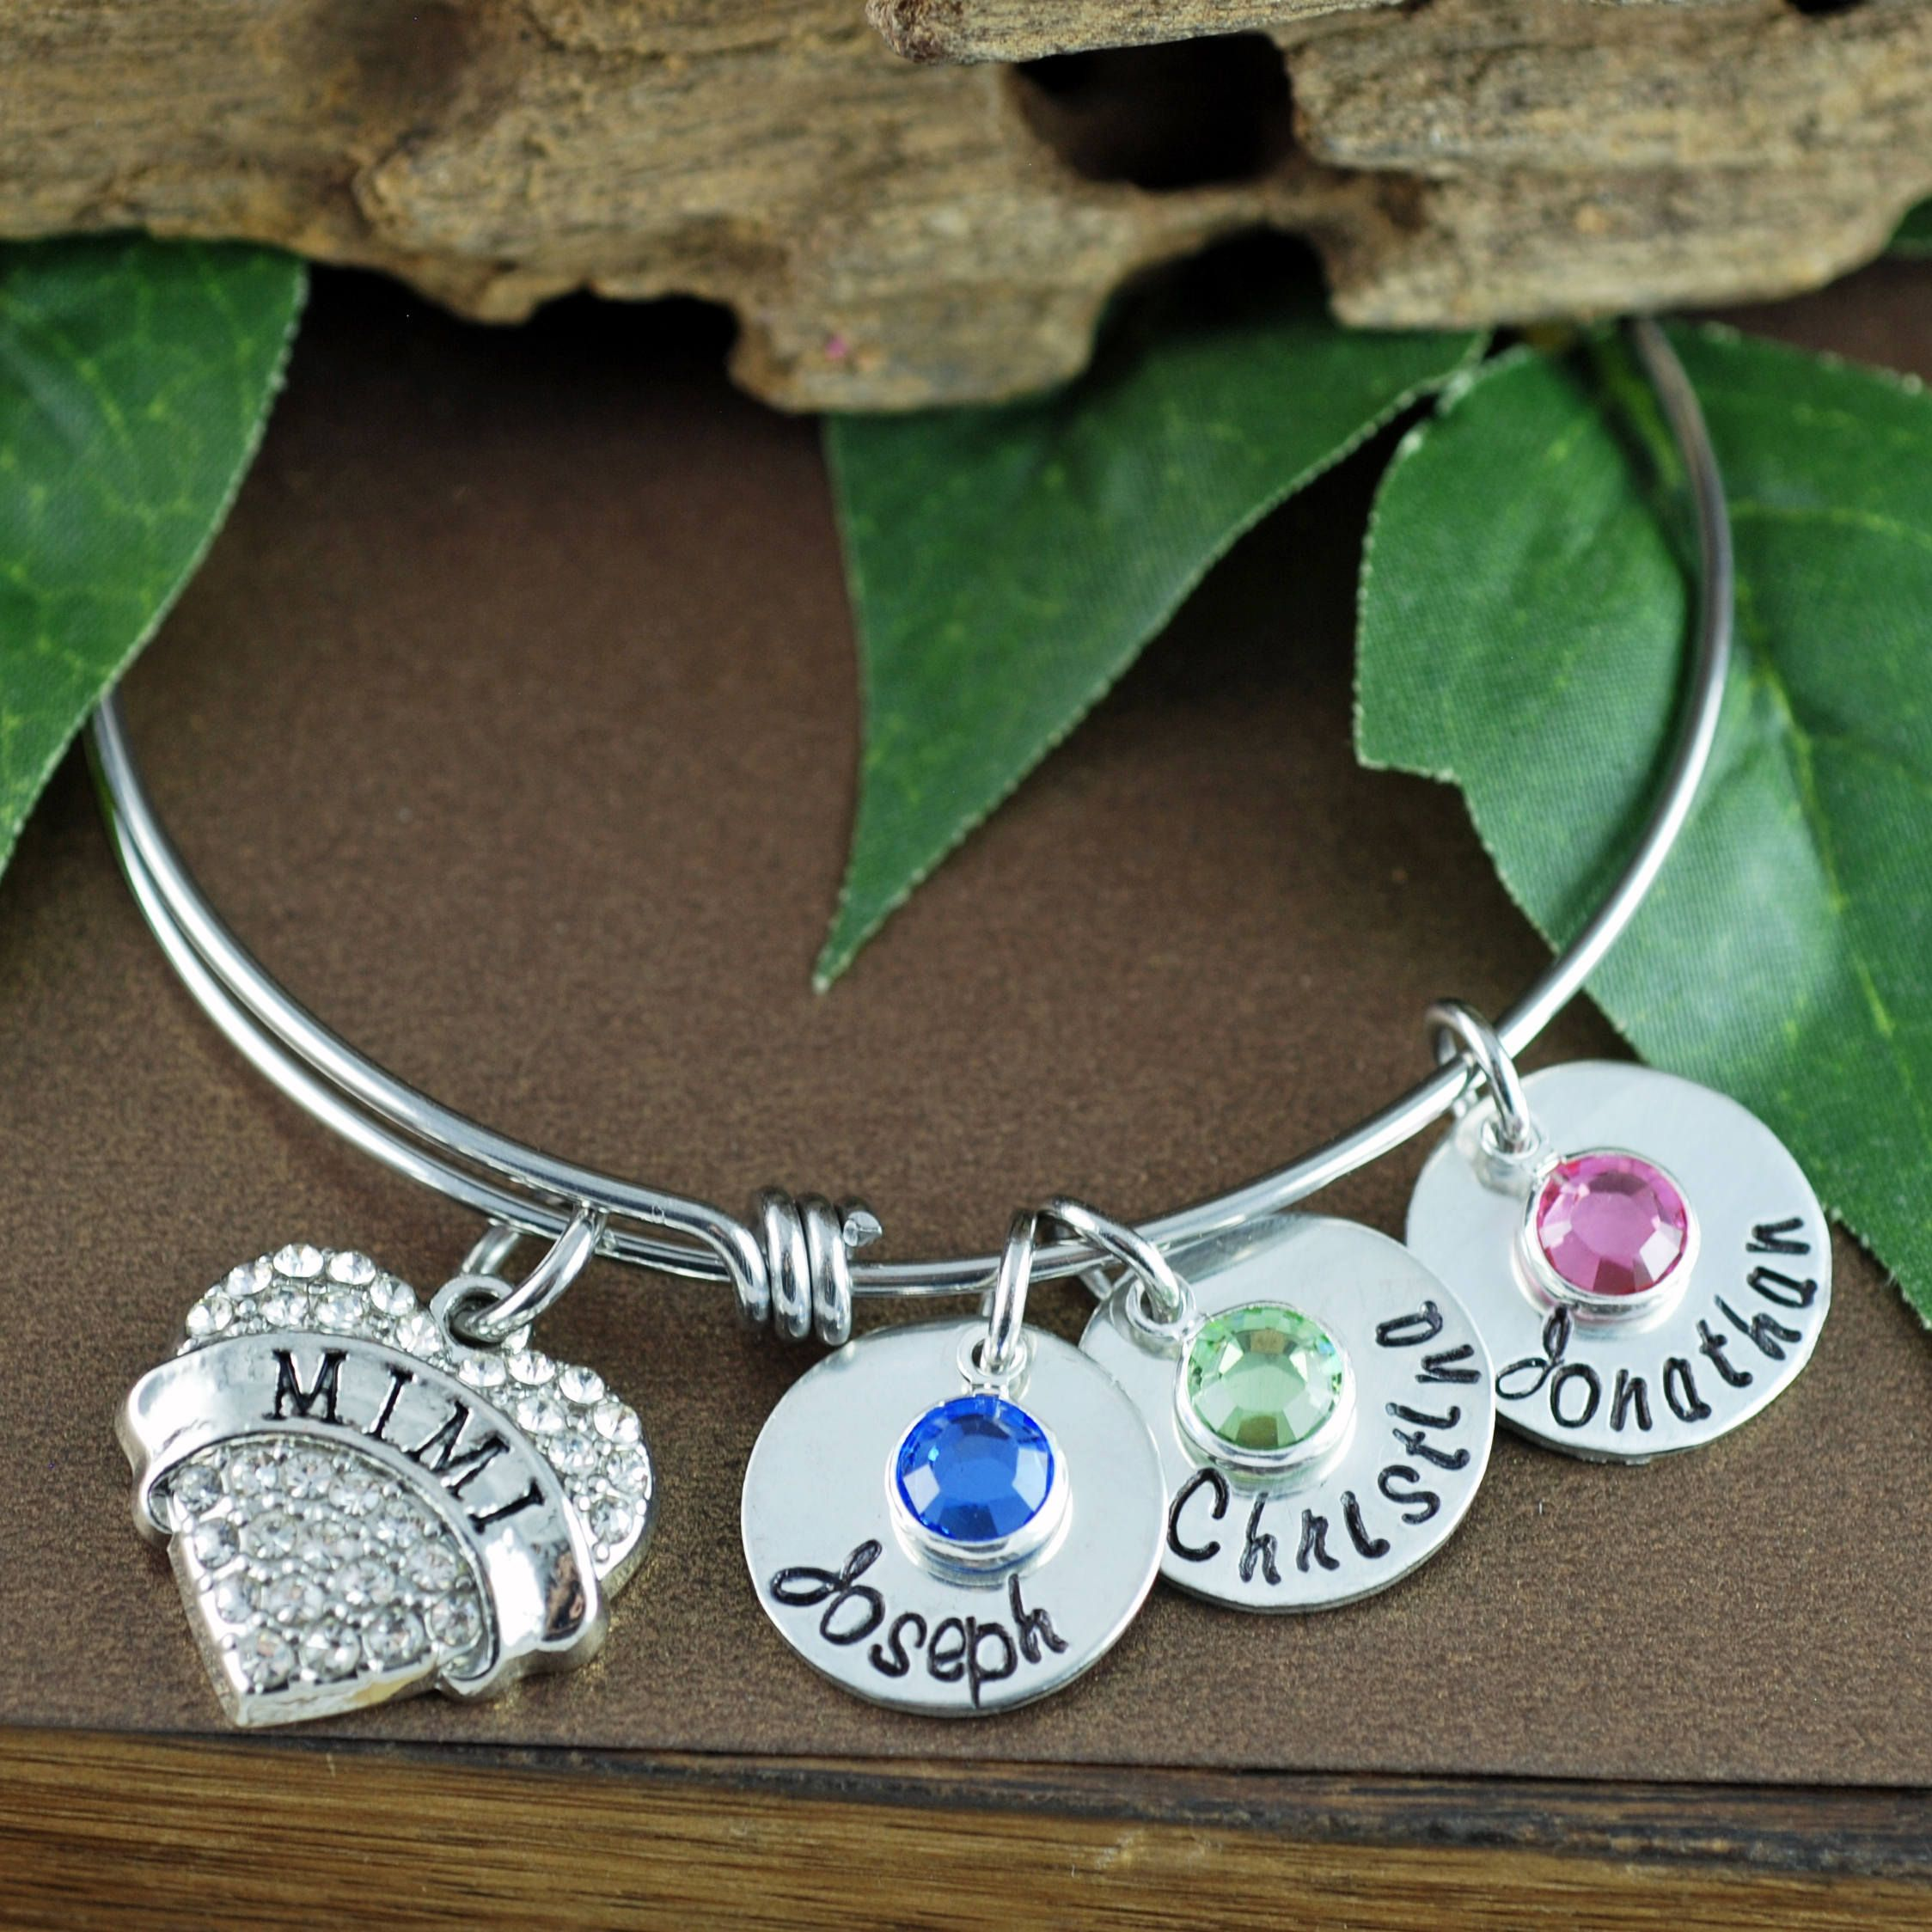 thank me birthday own bracelet listing fullxfull charm step birthstone grandma jewelry us mom in you il your gift as nanny loving present bangle mother for